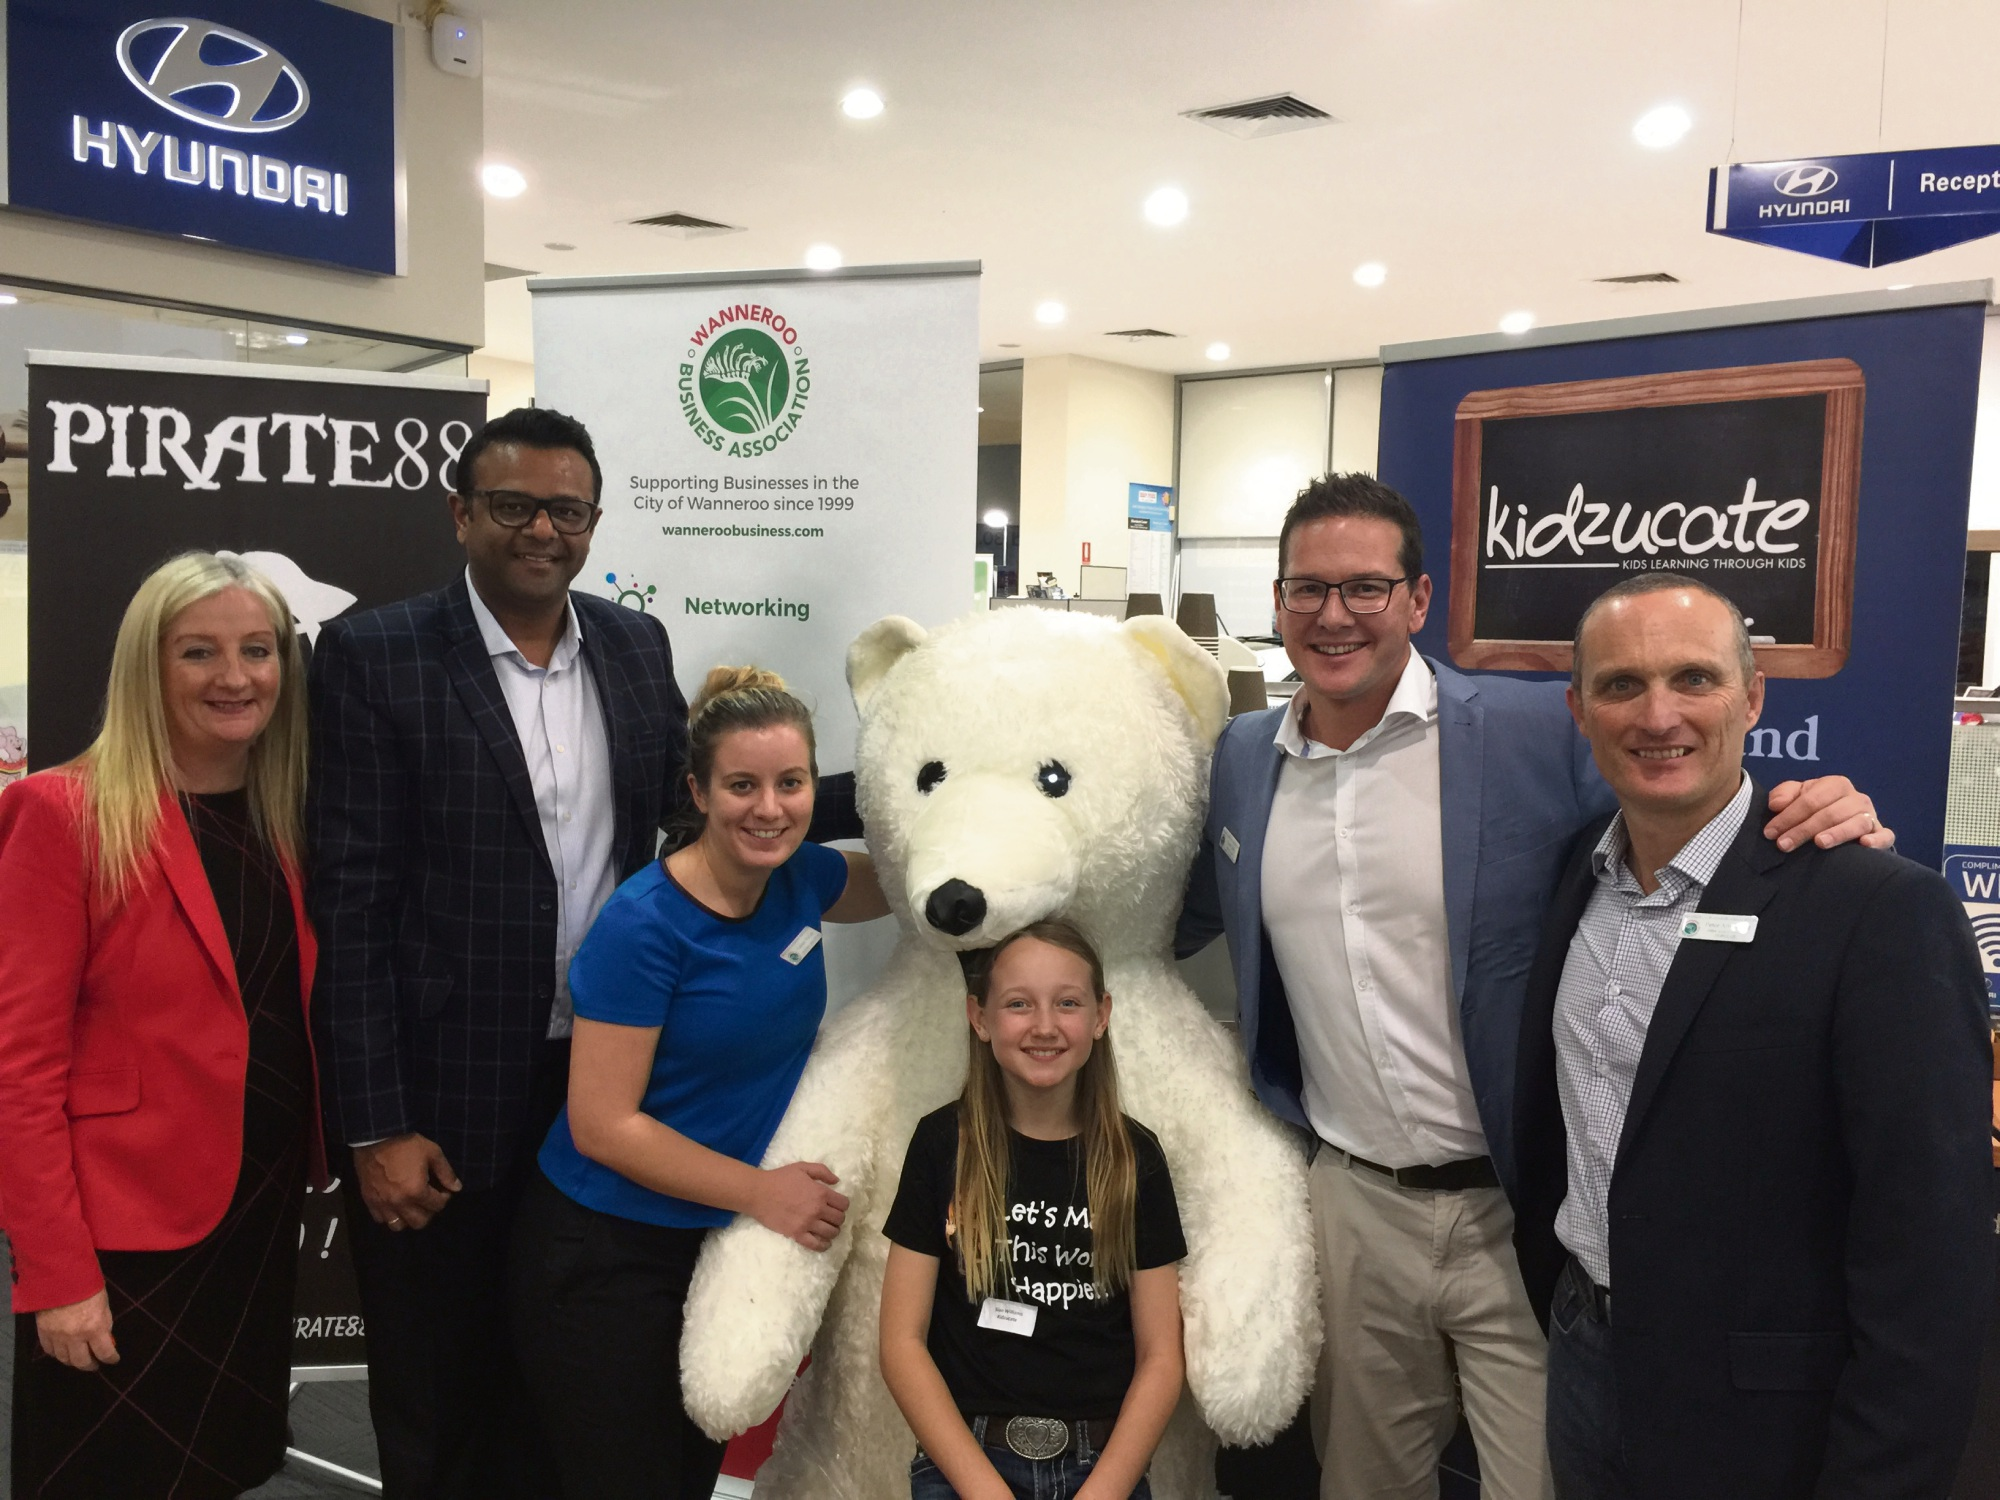 Wanneroo Mayor Tracey Roberts, Wanneroo Business Association's Dinesh Aggarwal and Lauren McGee, Kidzucate founder Sian Williams, association president Trent Carter and vice-president Peter Armstrong.